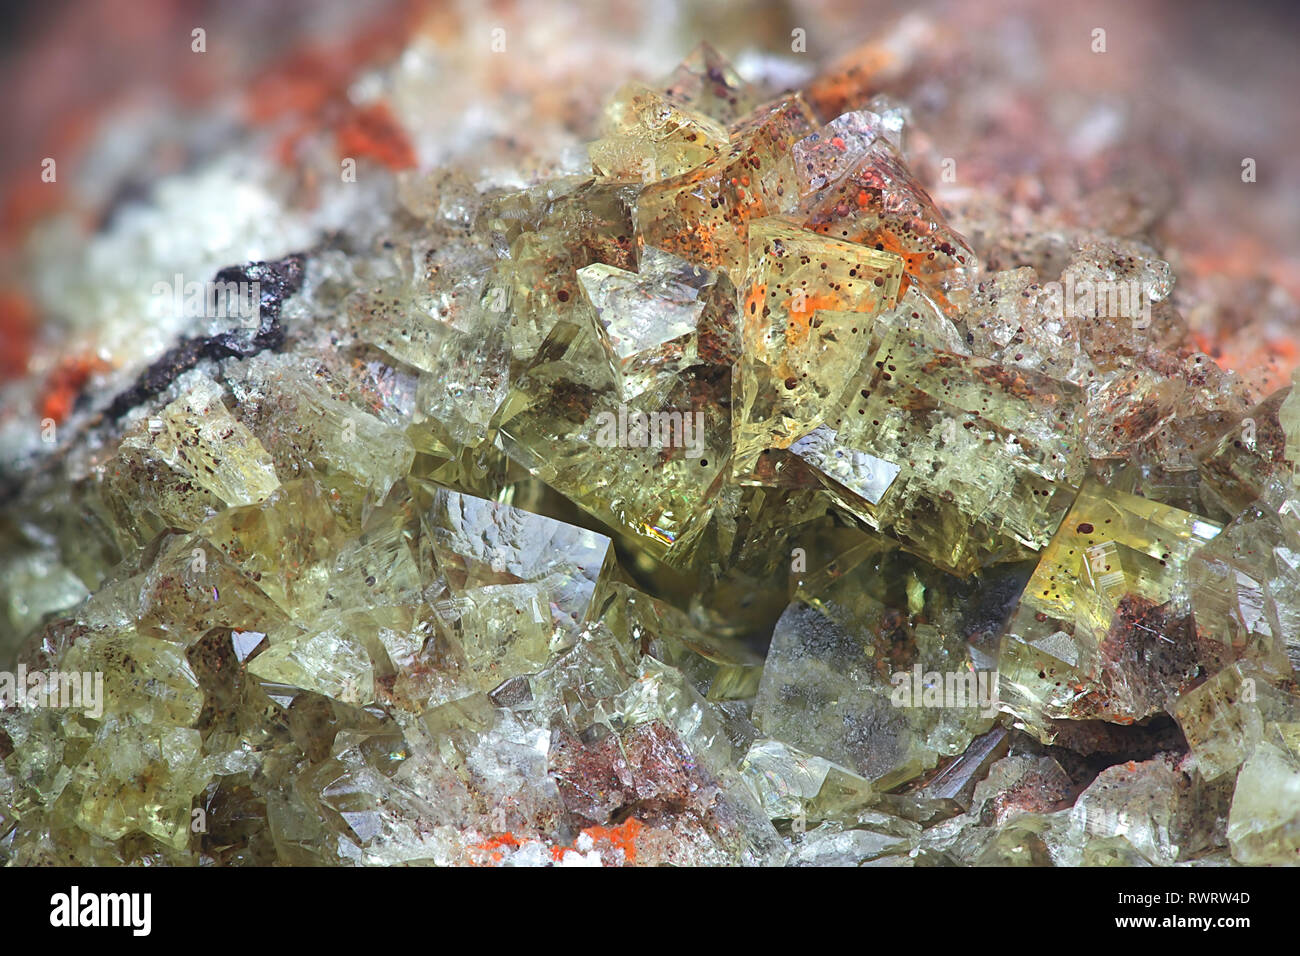 Crystals of fluorite with hematite inclusions from Illo calcite quarry in Finland - Stock Image